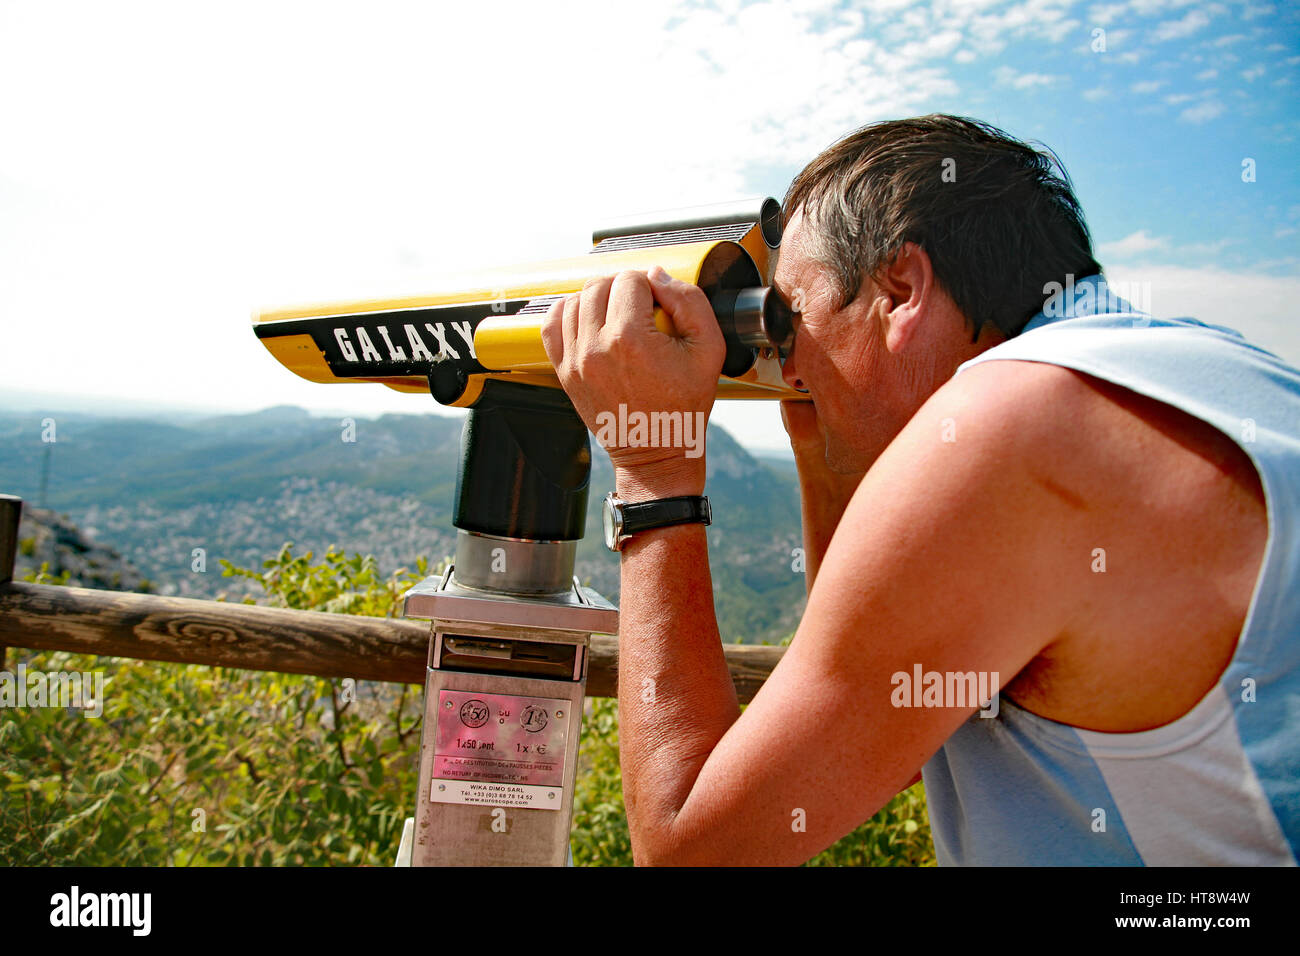 Man using a telescope South of France - Stock Image